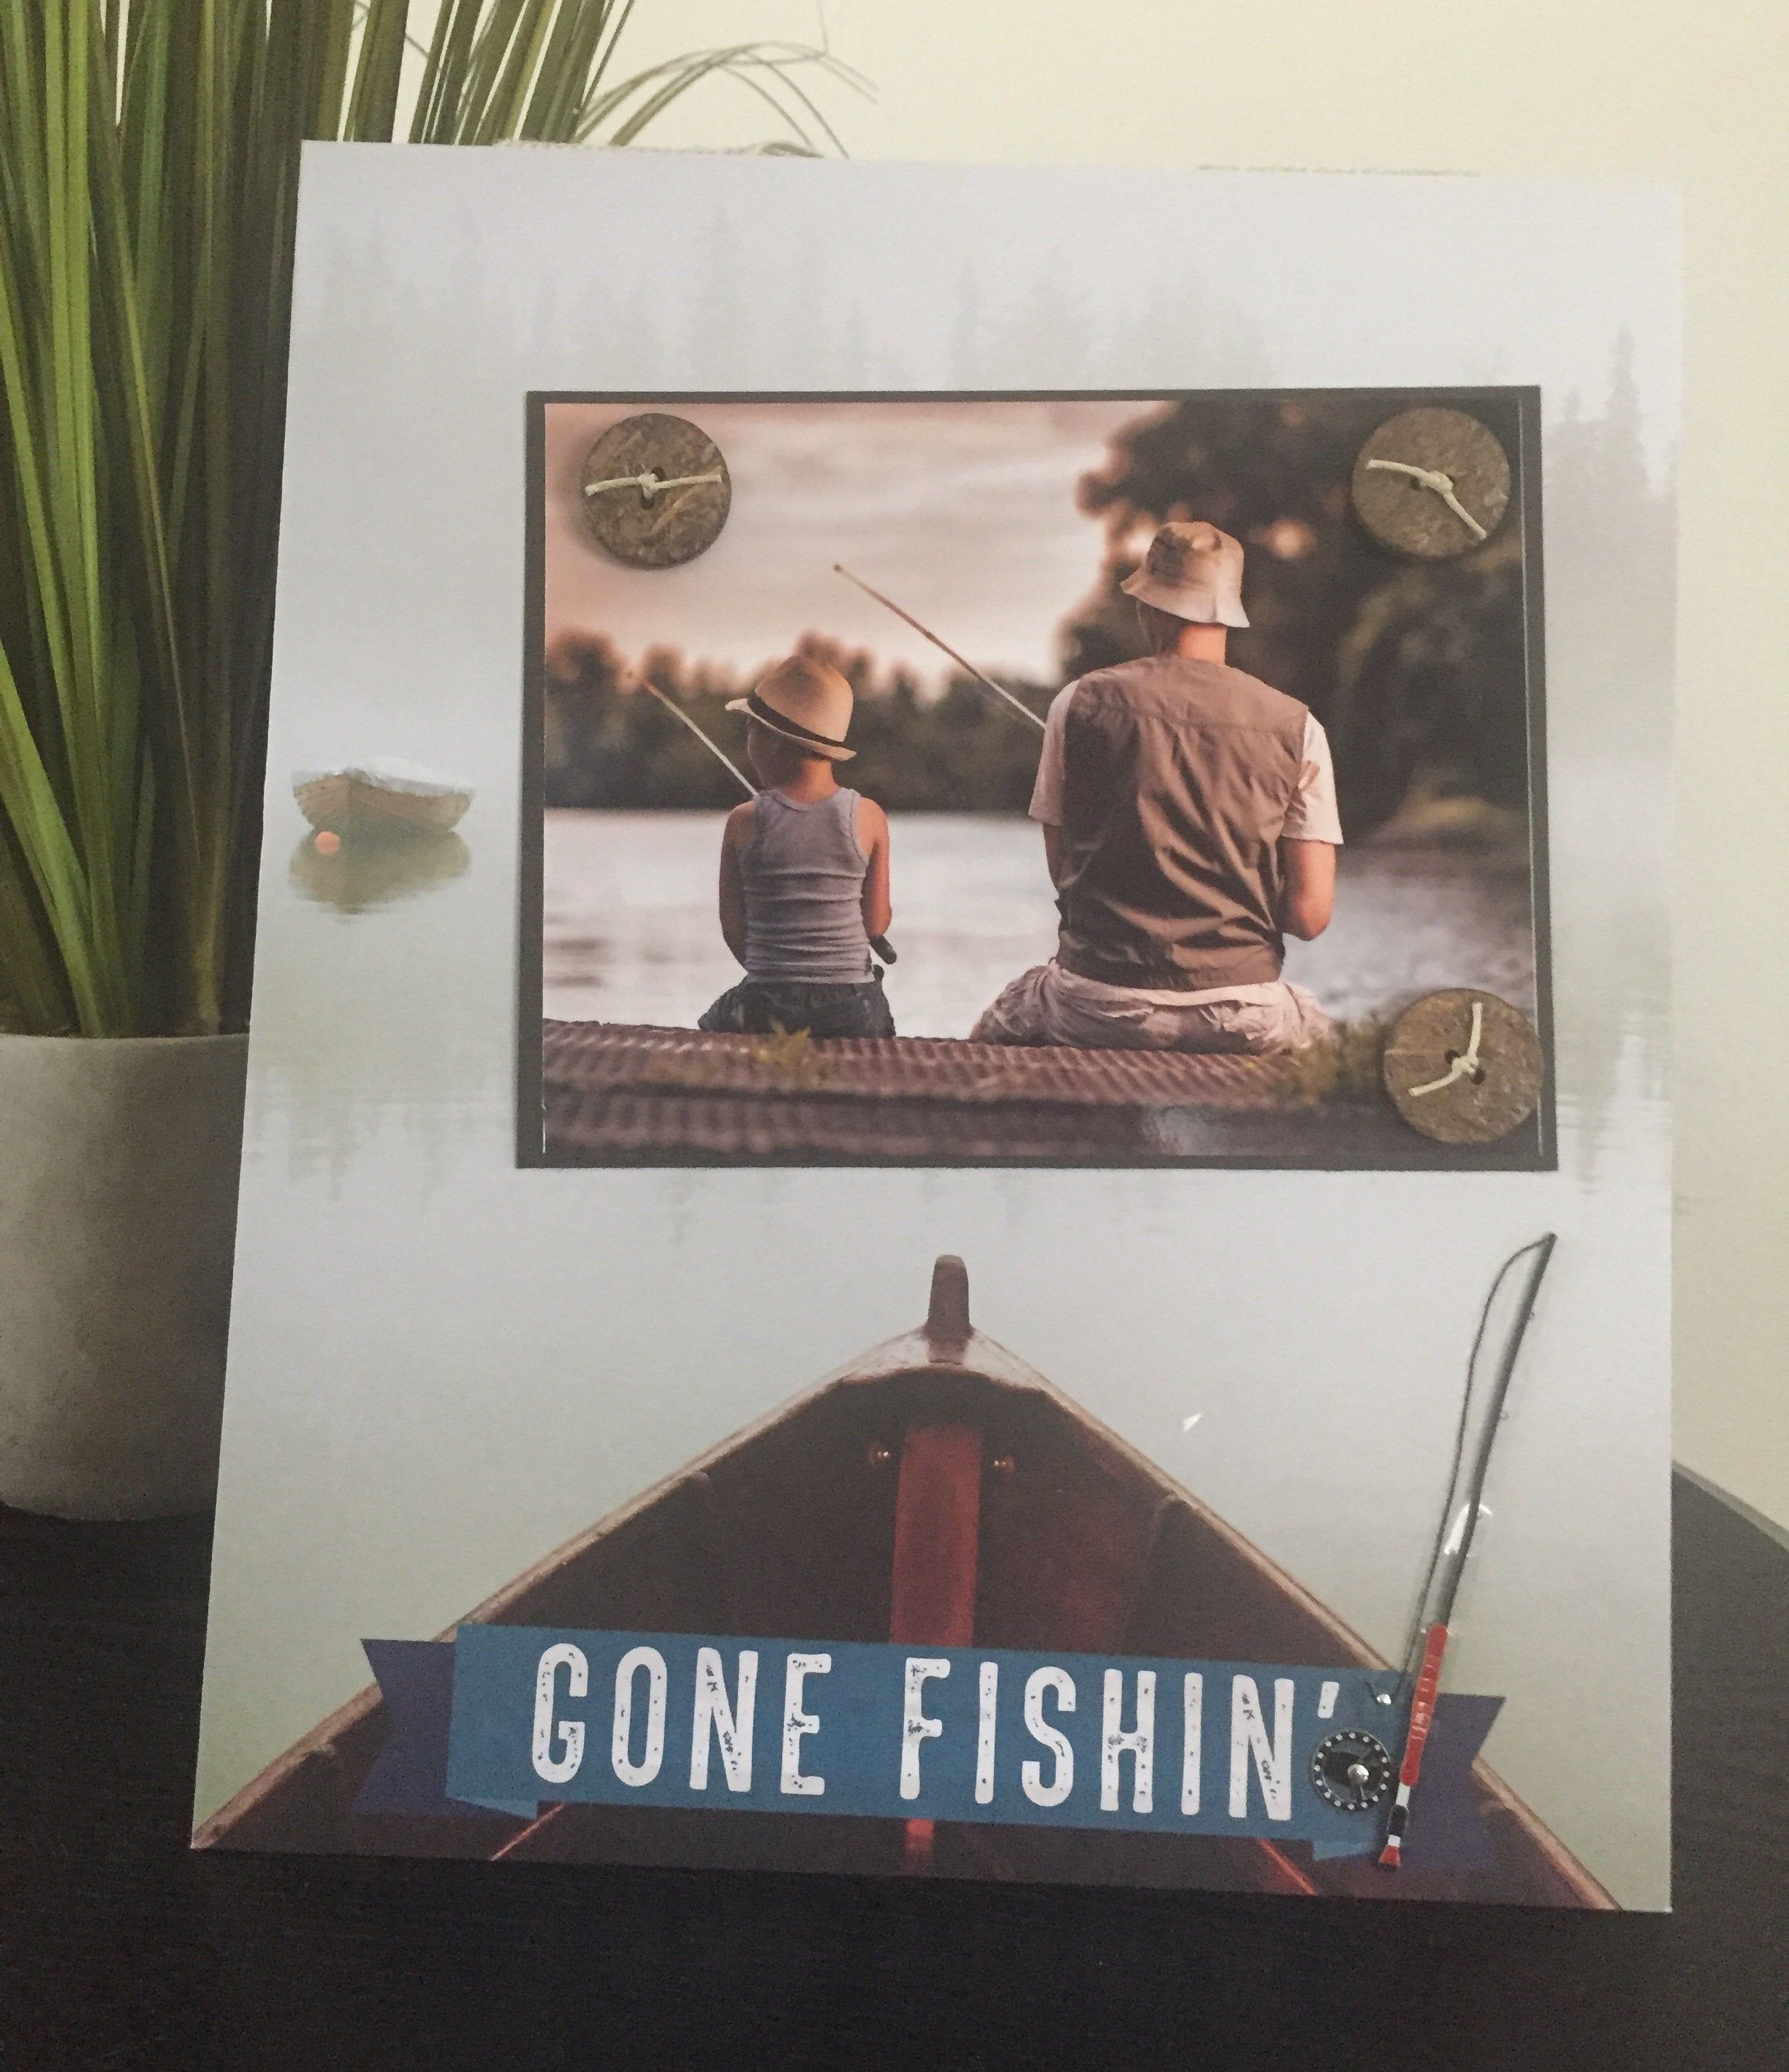 Gone Fishing Magnetic Picture Frame Handmade Father Father S Day Son Gift Home Decor By Frame A Memory Size 9 X 11 Holds 5 X 7 Photo With Images Magnetic Picture Frames Son Gift